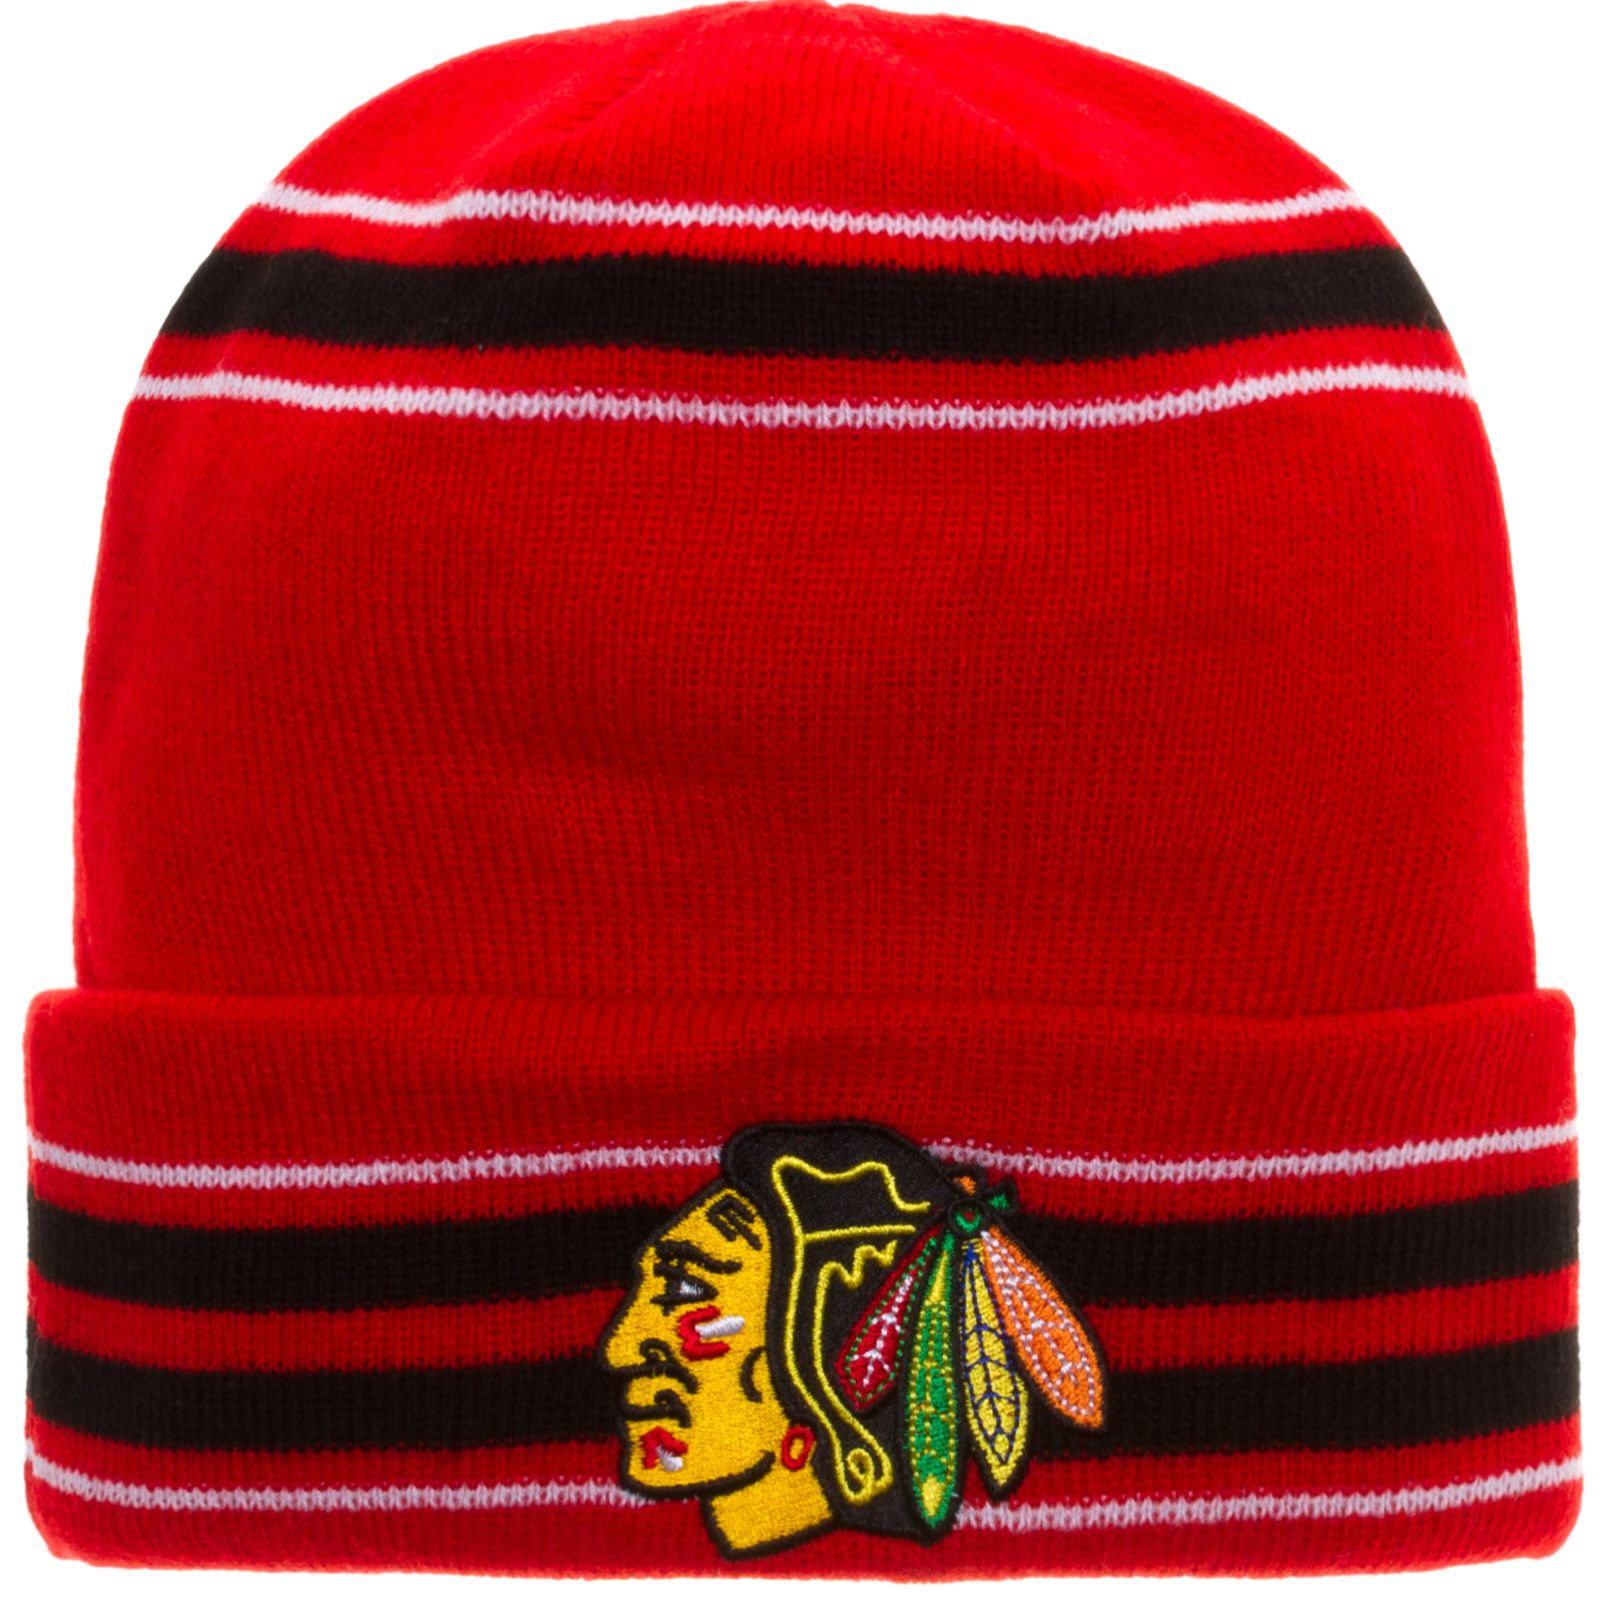 d84ea708f4f ... coupon code for chicago blackhawks red striped cuffed knit hat by old  time hockey chicago blackhawks